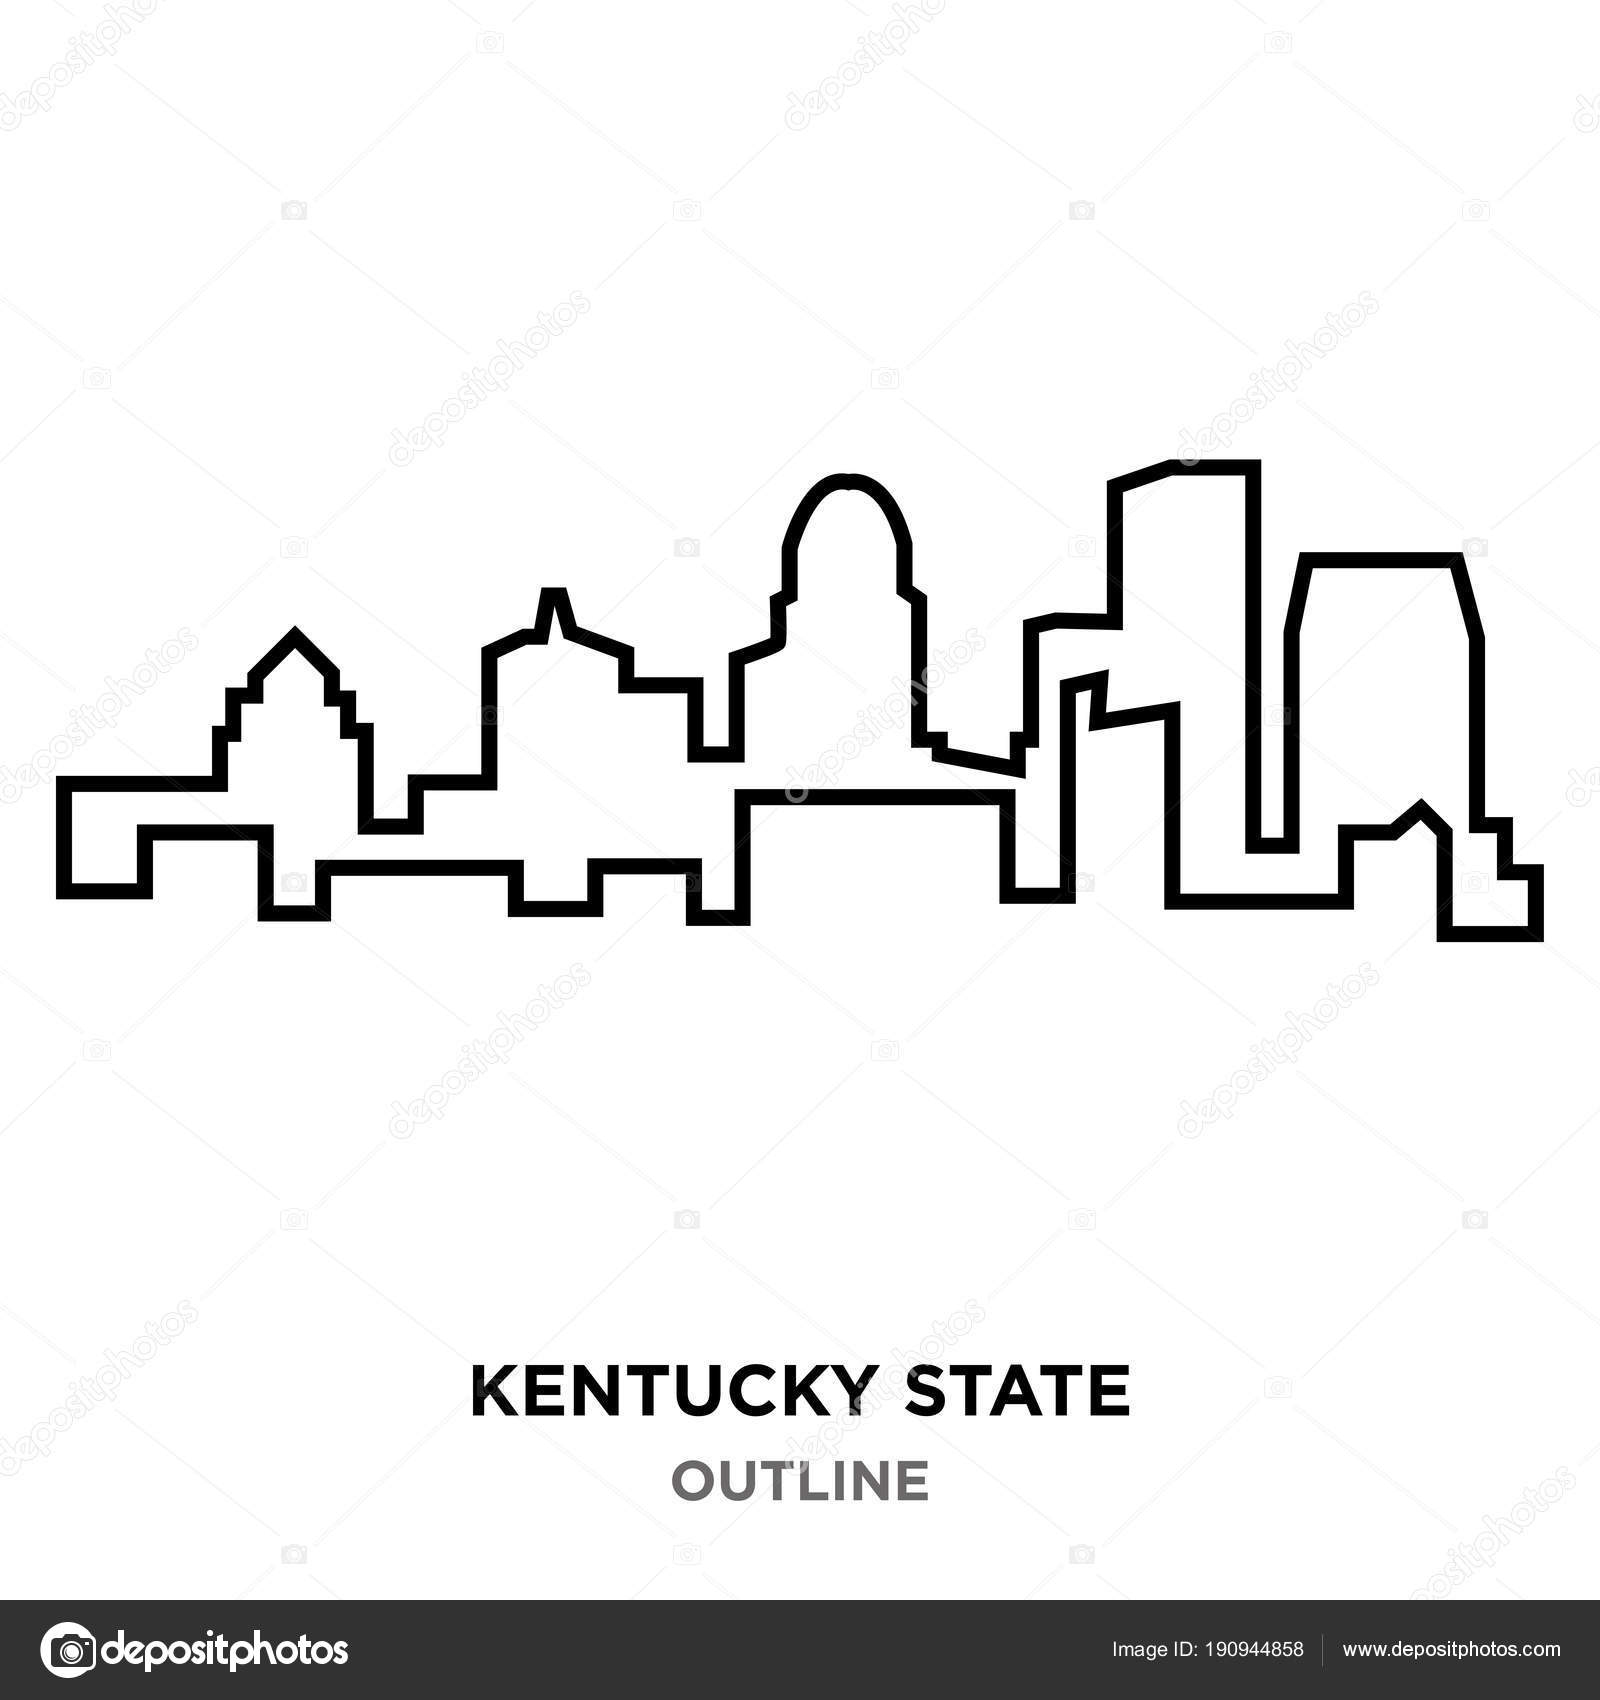 kentucky state outline on white background stock vector